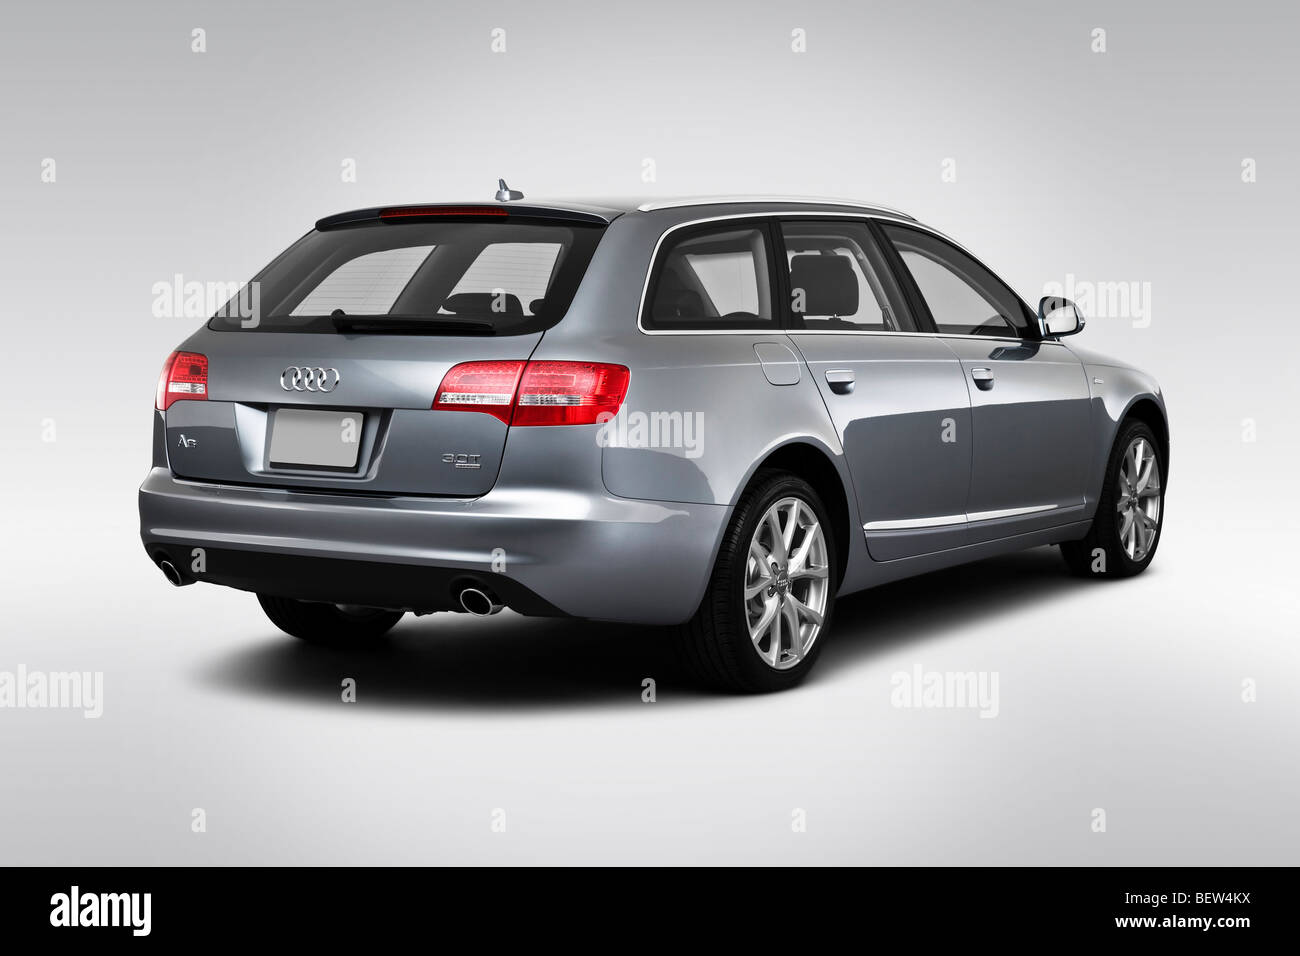 hight resolution of 2010 audi a6 avant 3 0 quattro in gray rear angle view